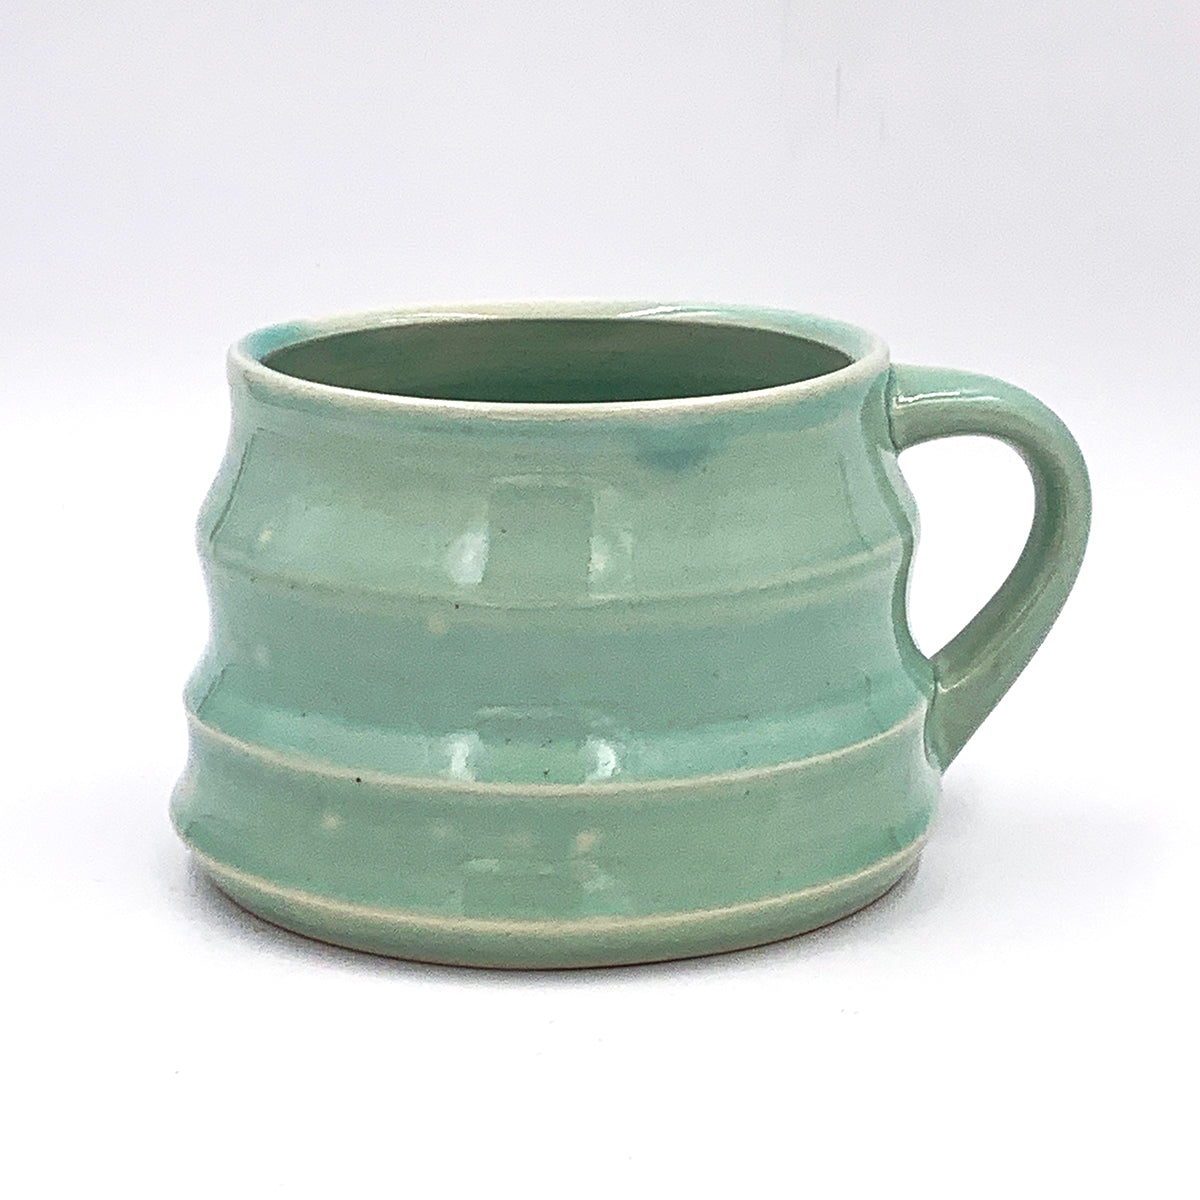 One of a kind, 16 oz Celadon Squish